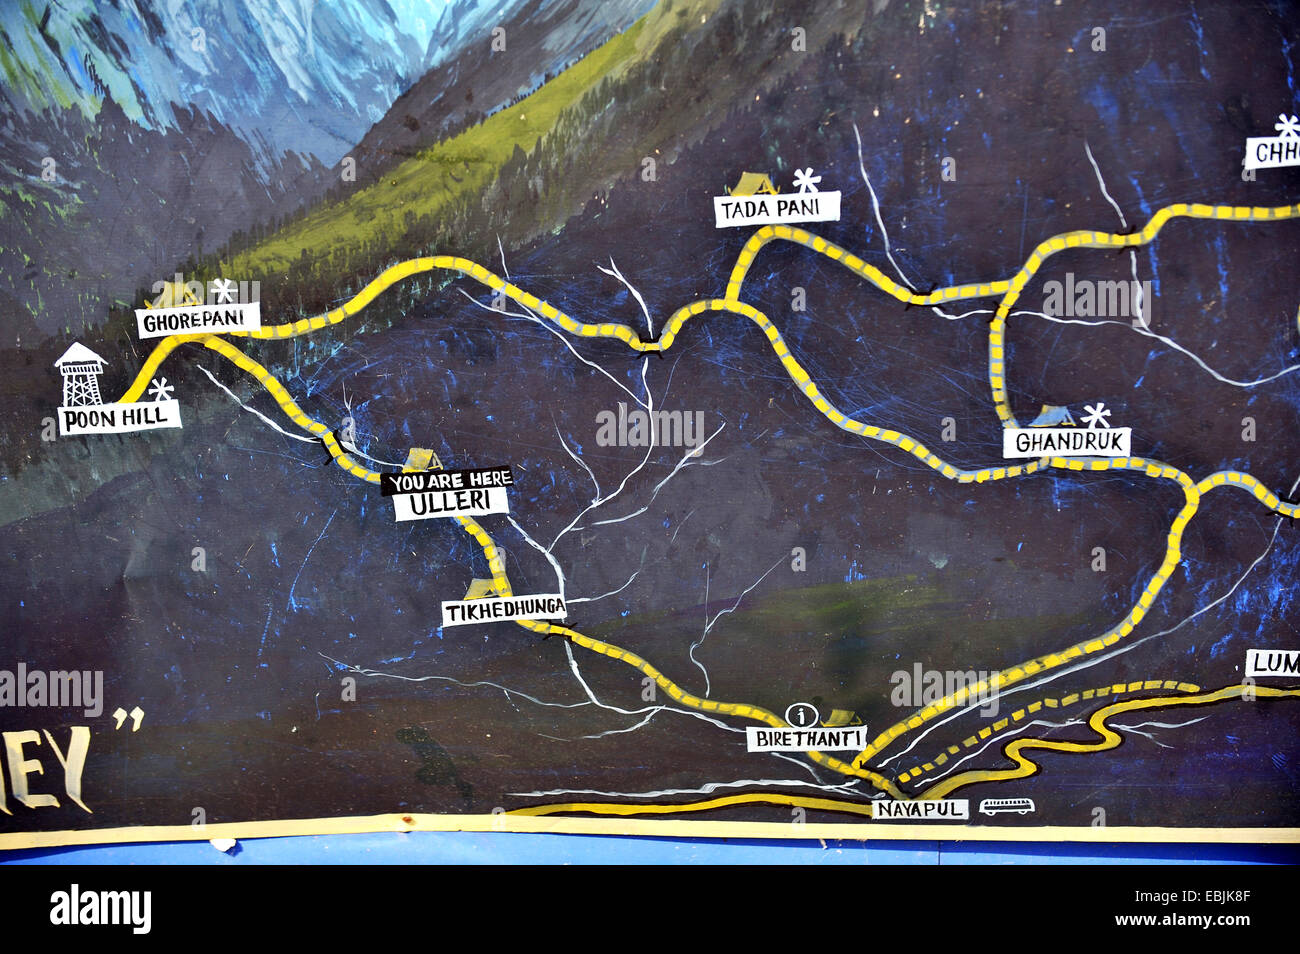 map of hiking trails at the foot of the Annapurna massif, Nepal - Stock Image